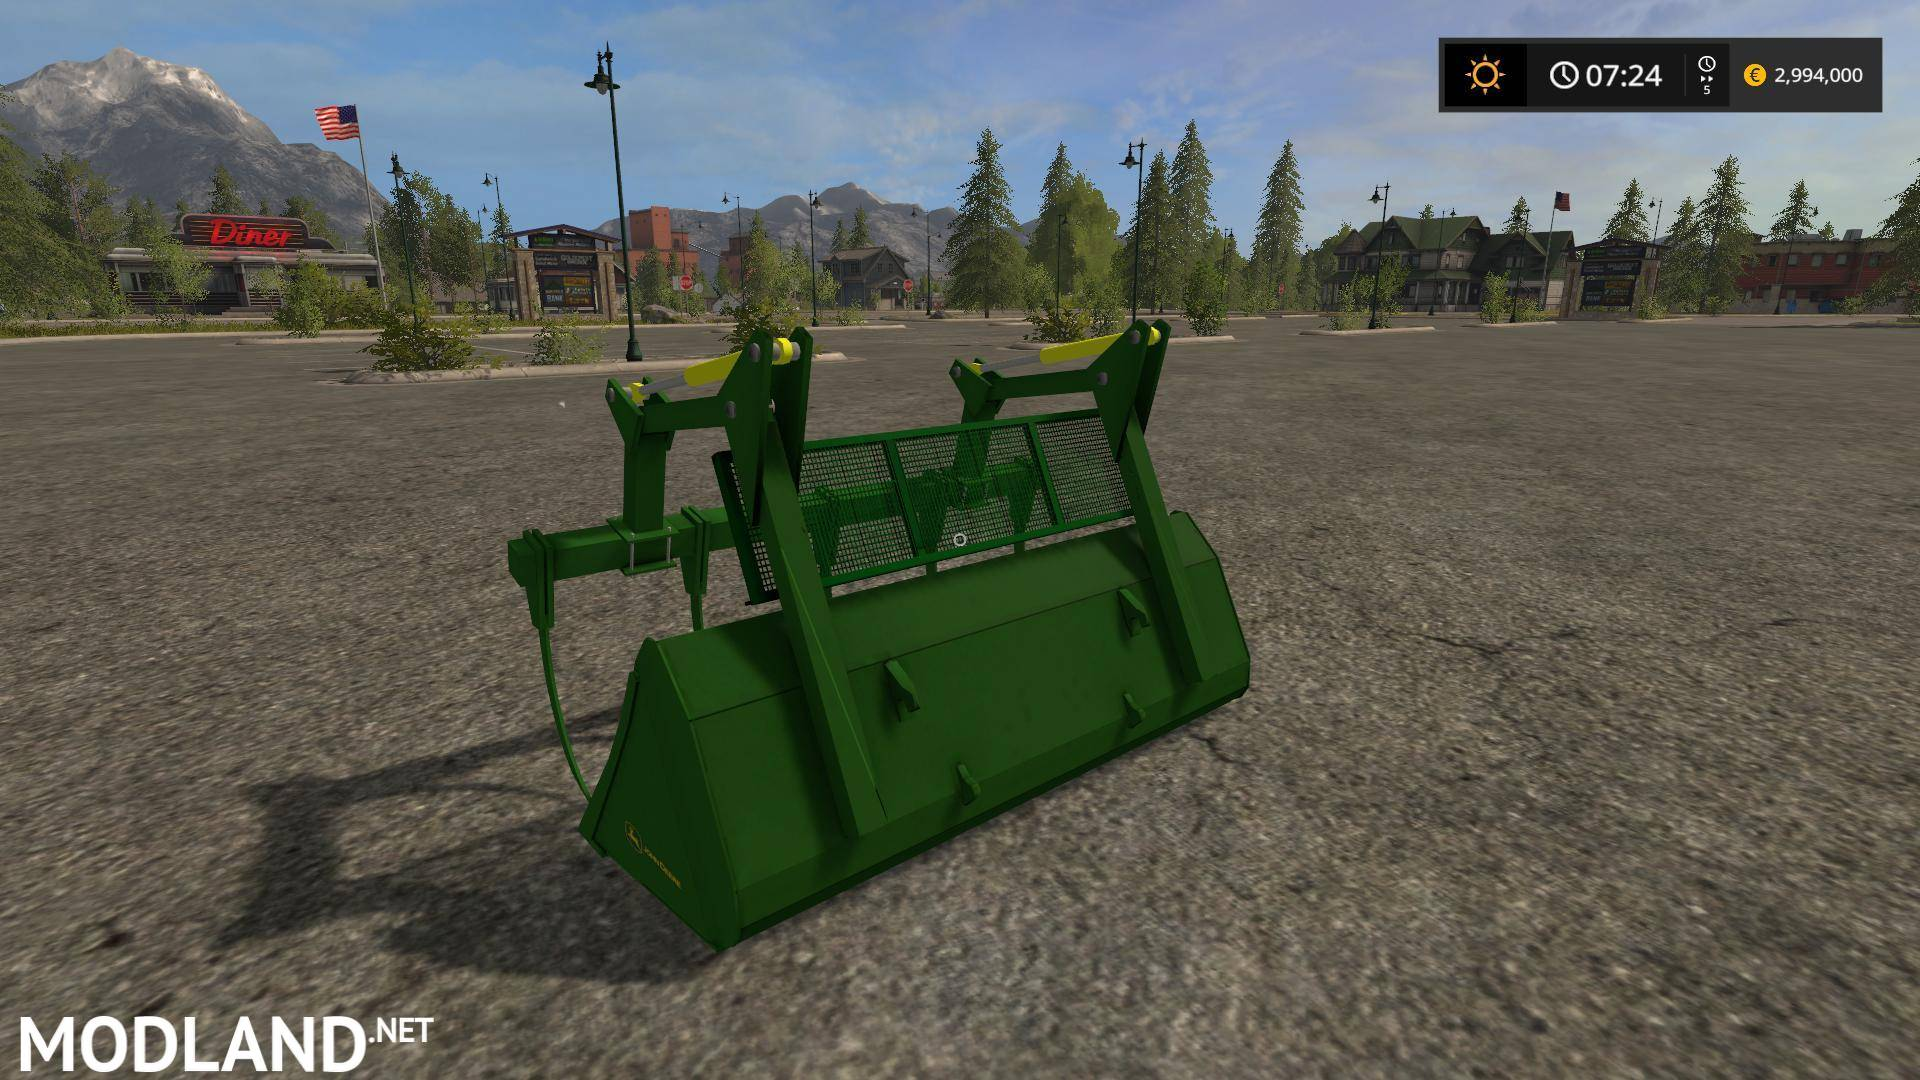 John Deere graple bucket v 1.0 mod Farming Simulator 17